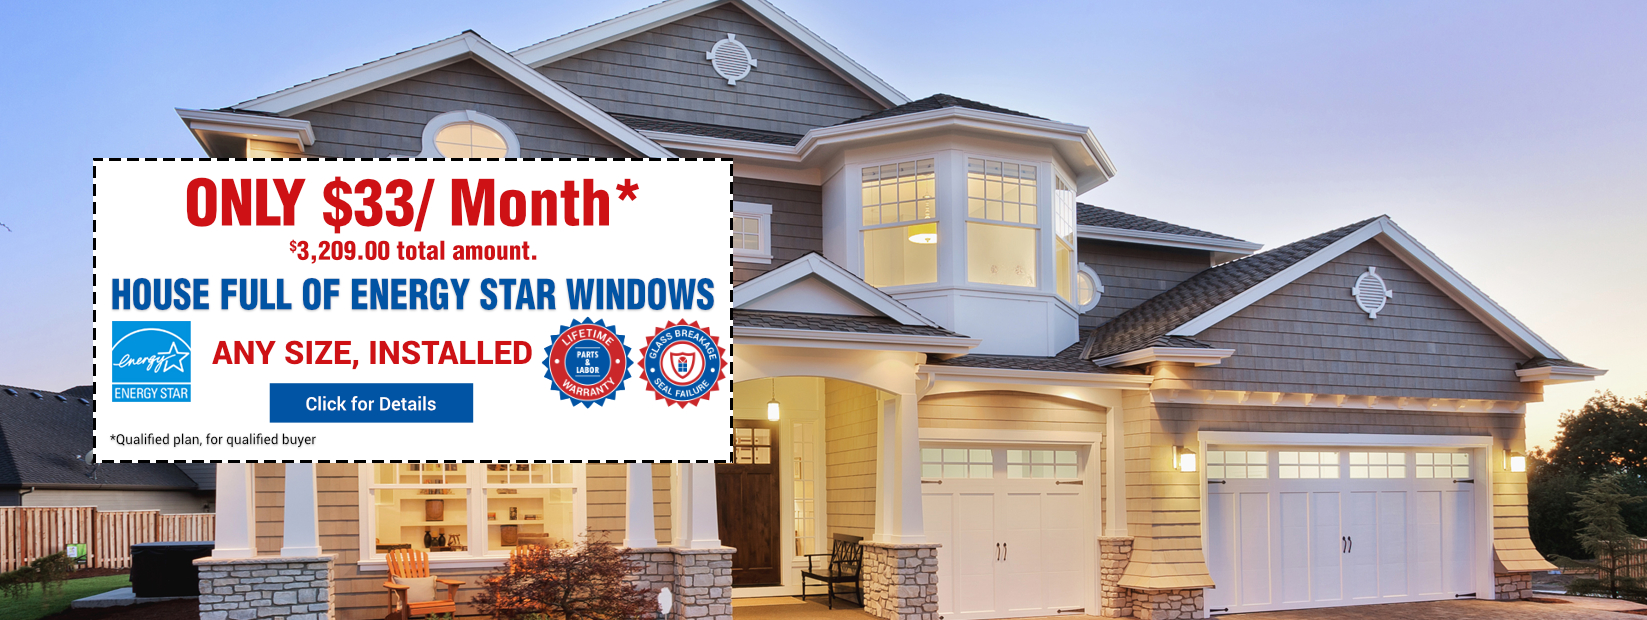 Replacement Windows Coupons